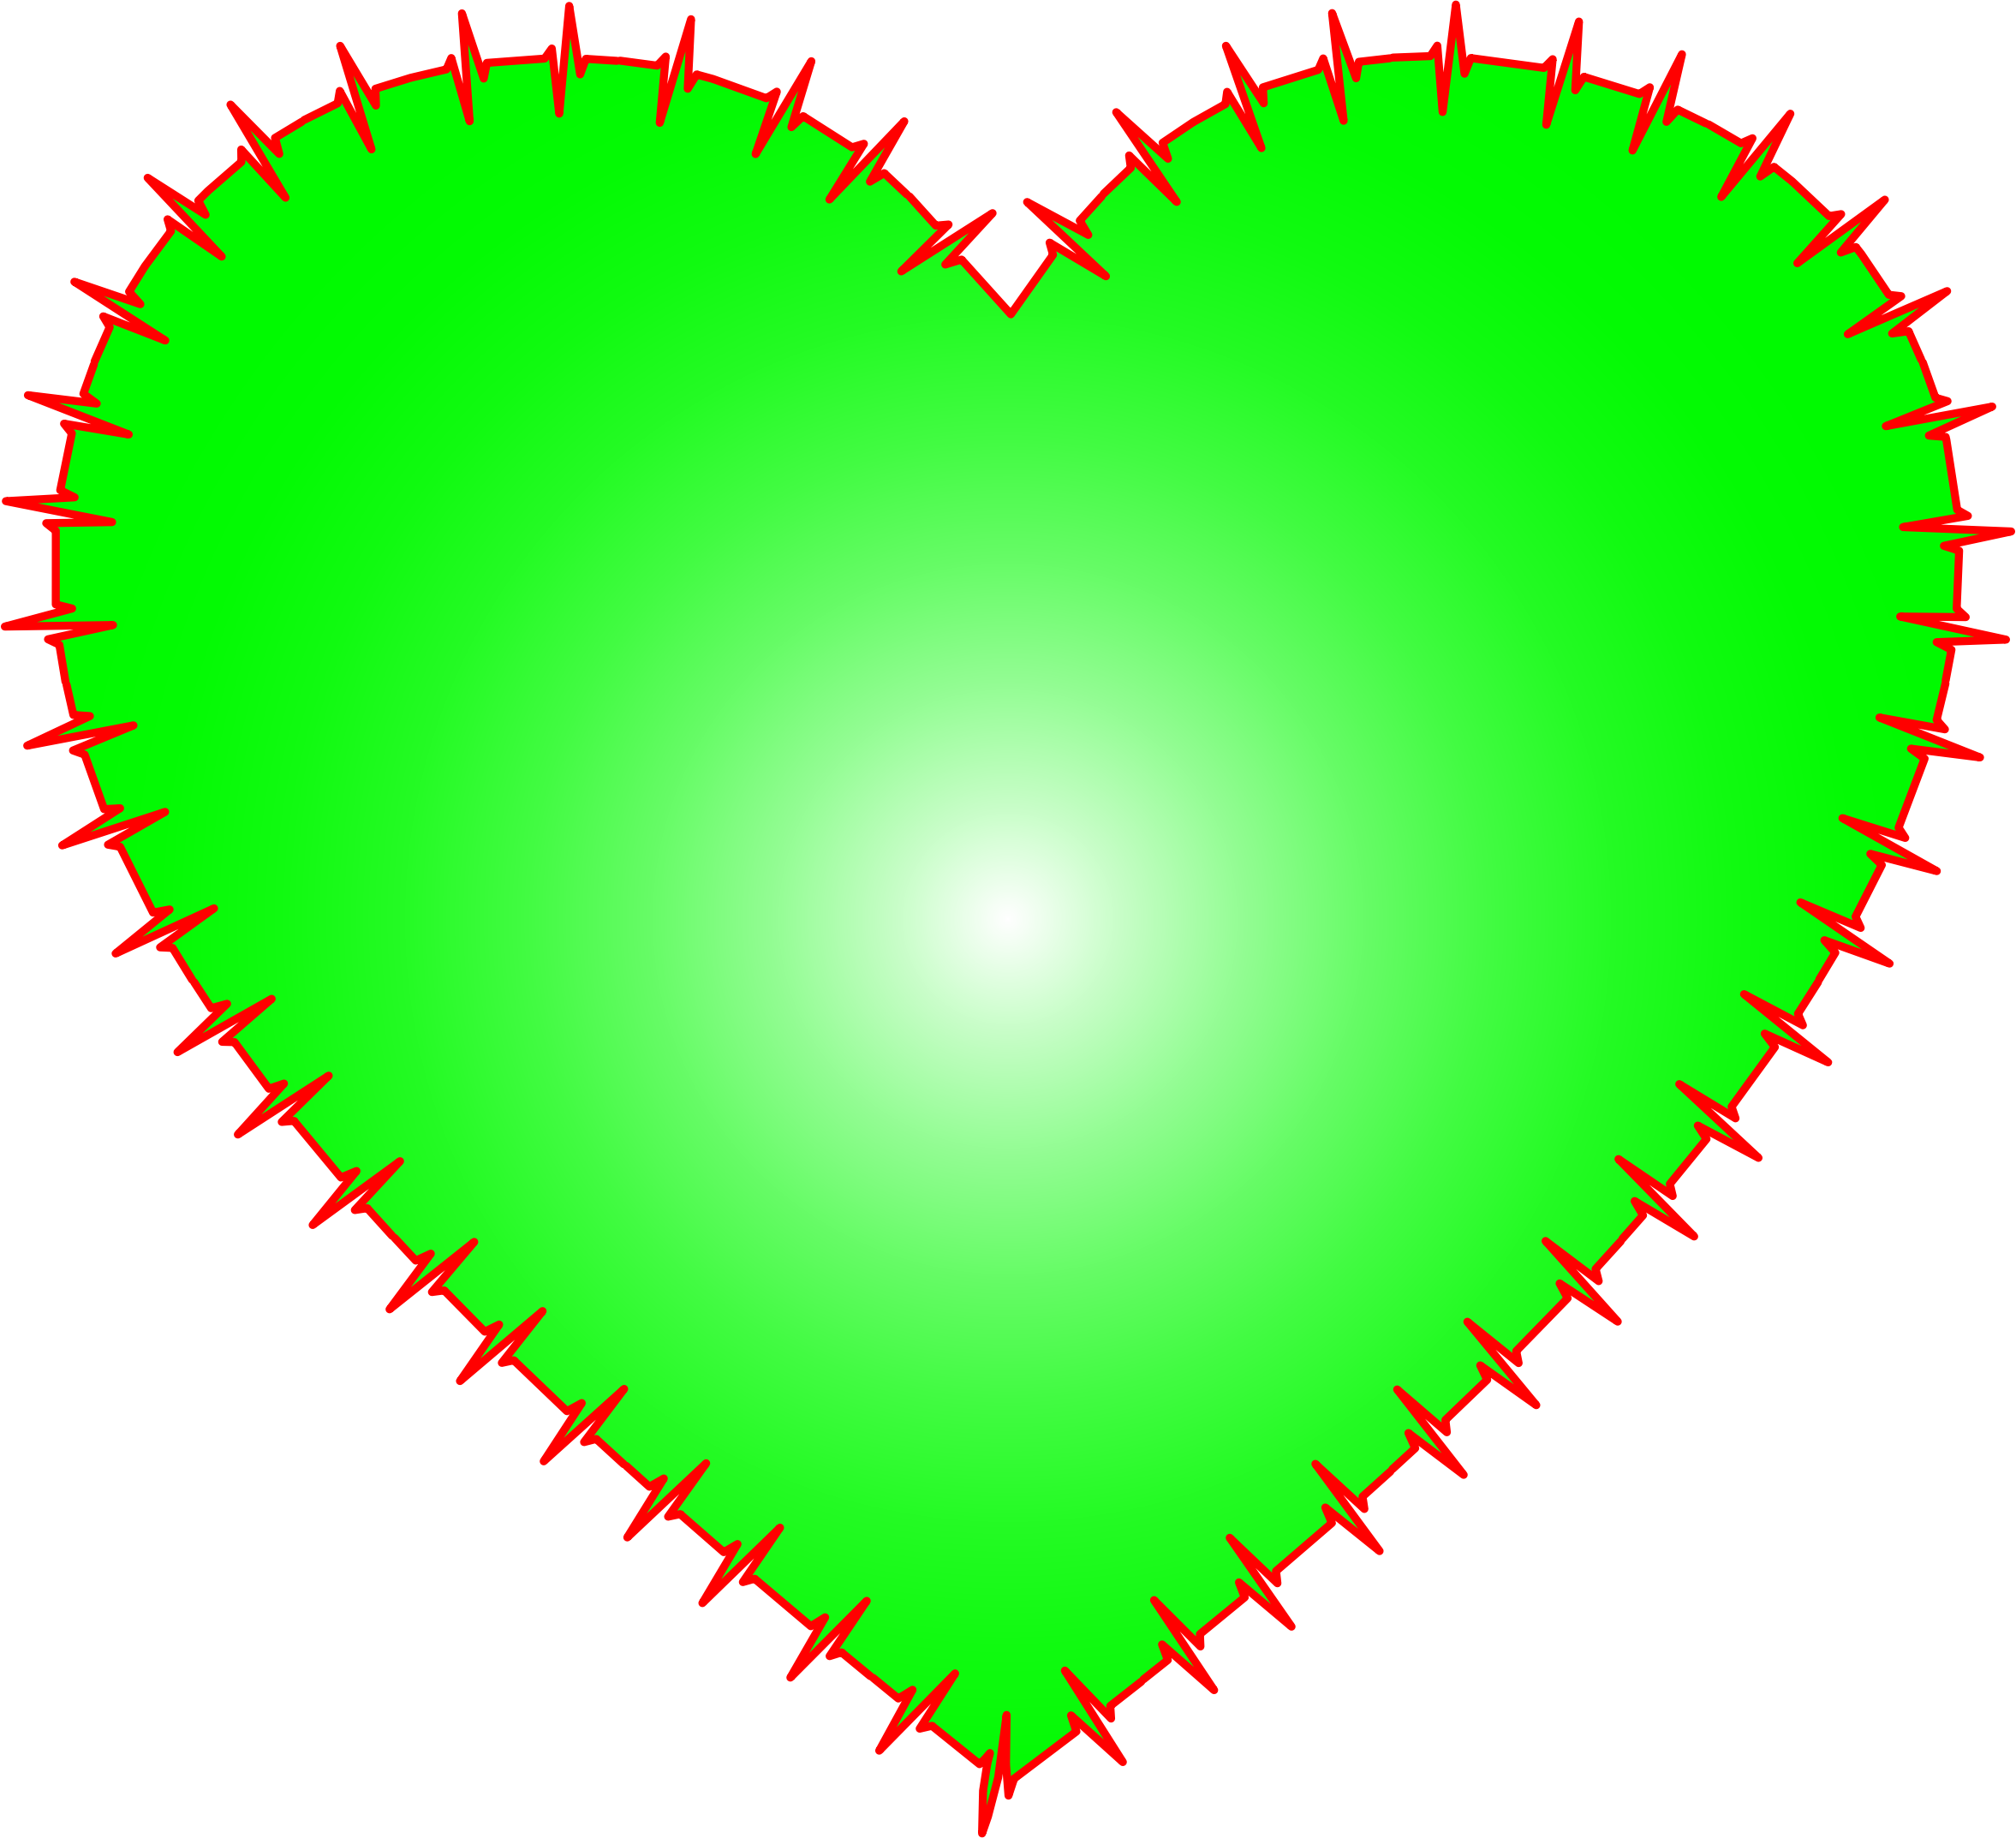 Heart EKG Rhythm Green by GDJ